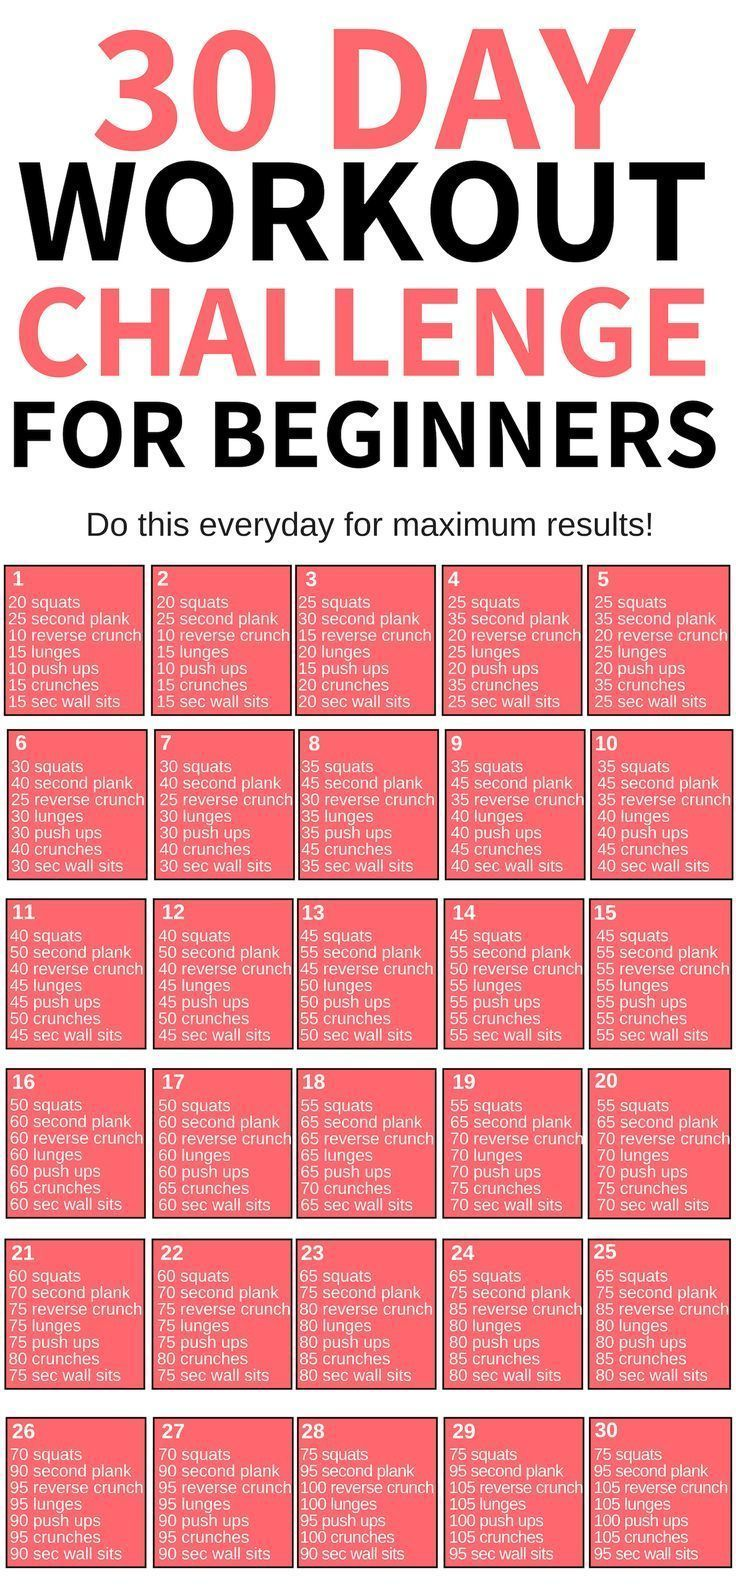 This 30 day workout challenge for beginners is THE BEST! Im so glad I found this awesome workout cha...